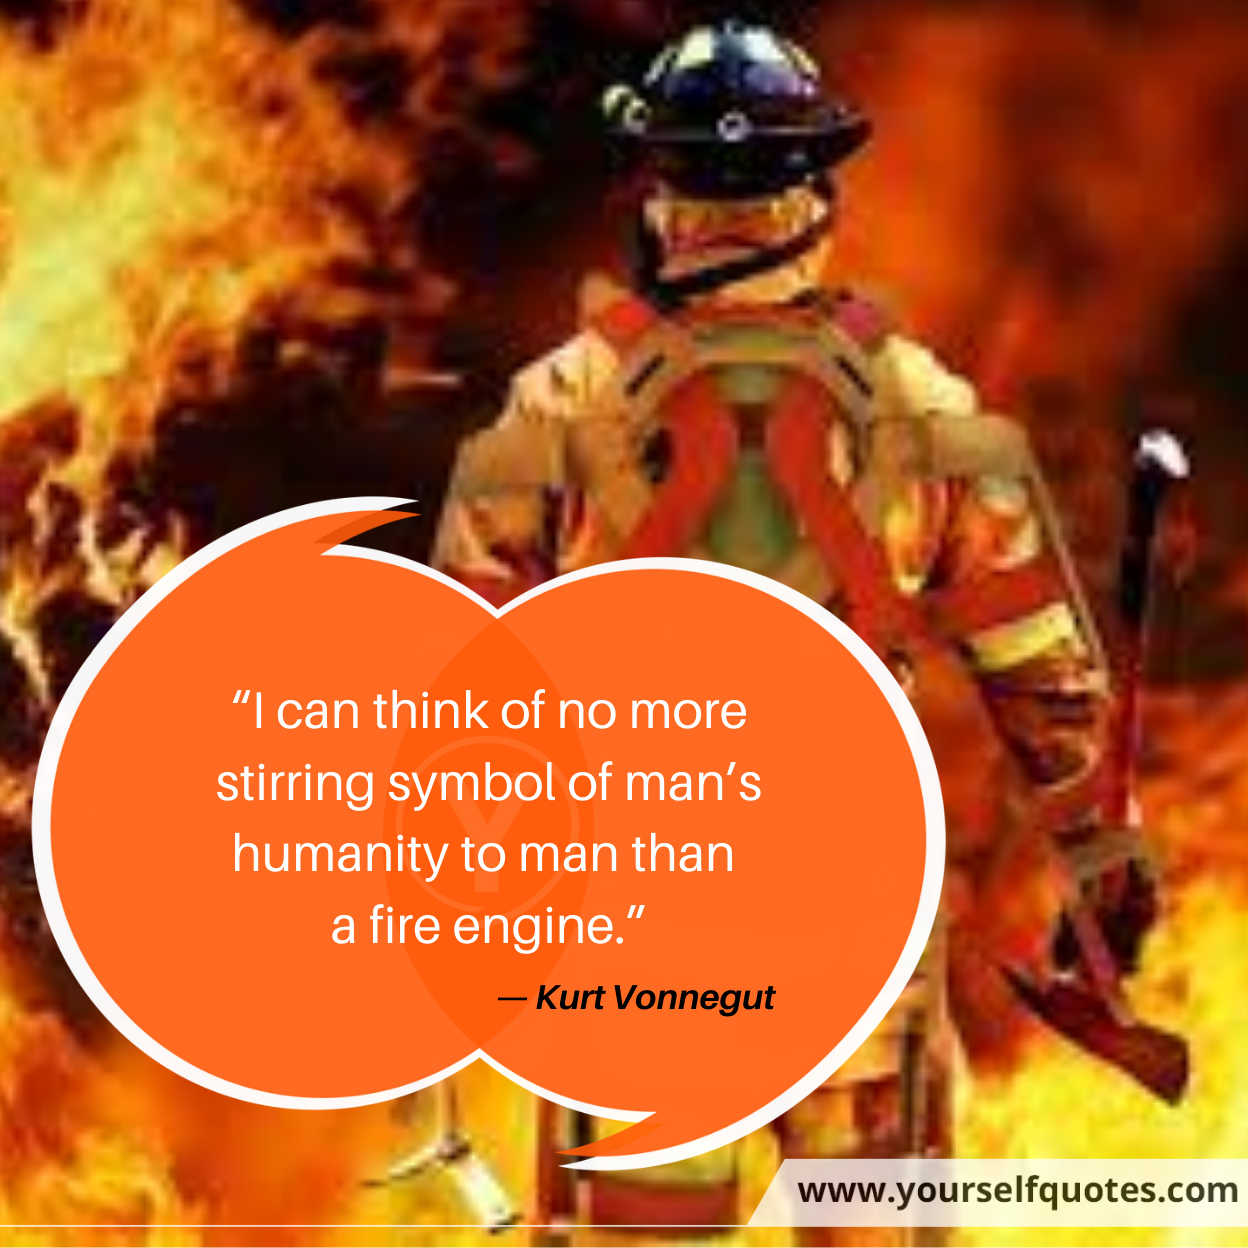 firefighters day quotes messages images by kurt vonnegut.jpg